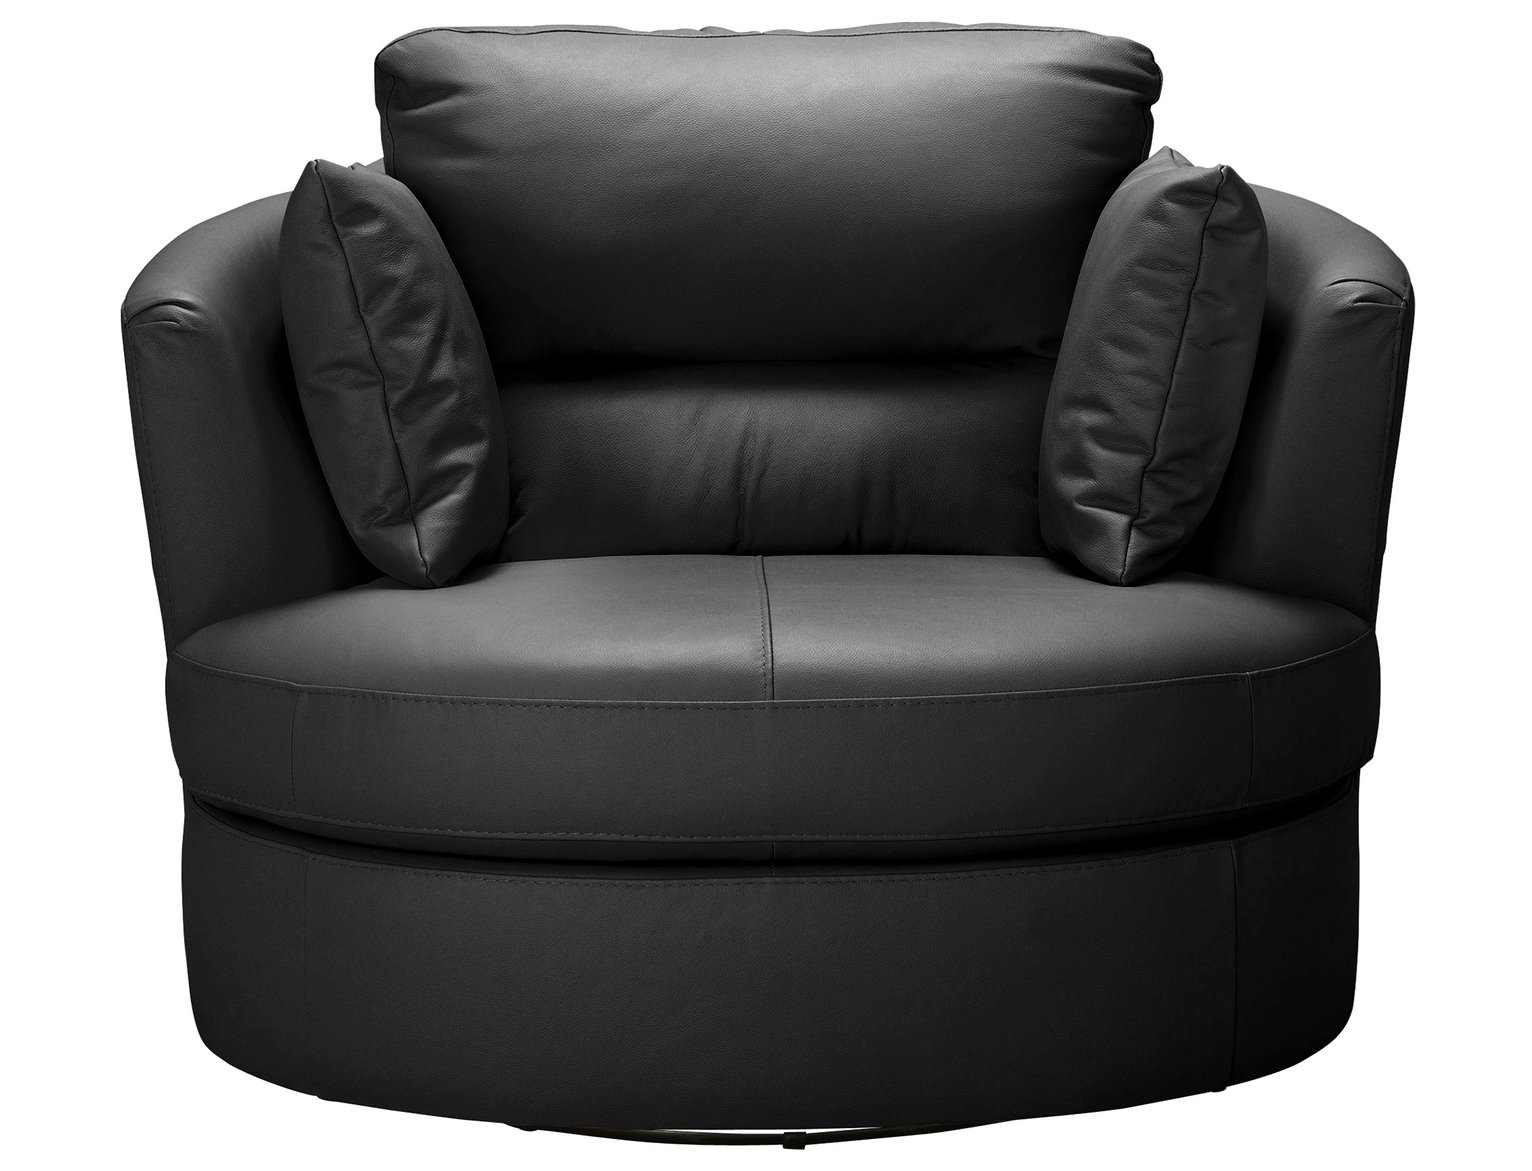 Argos Home Trieste Leather Swivel Chair - Black